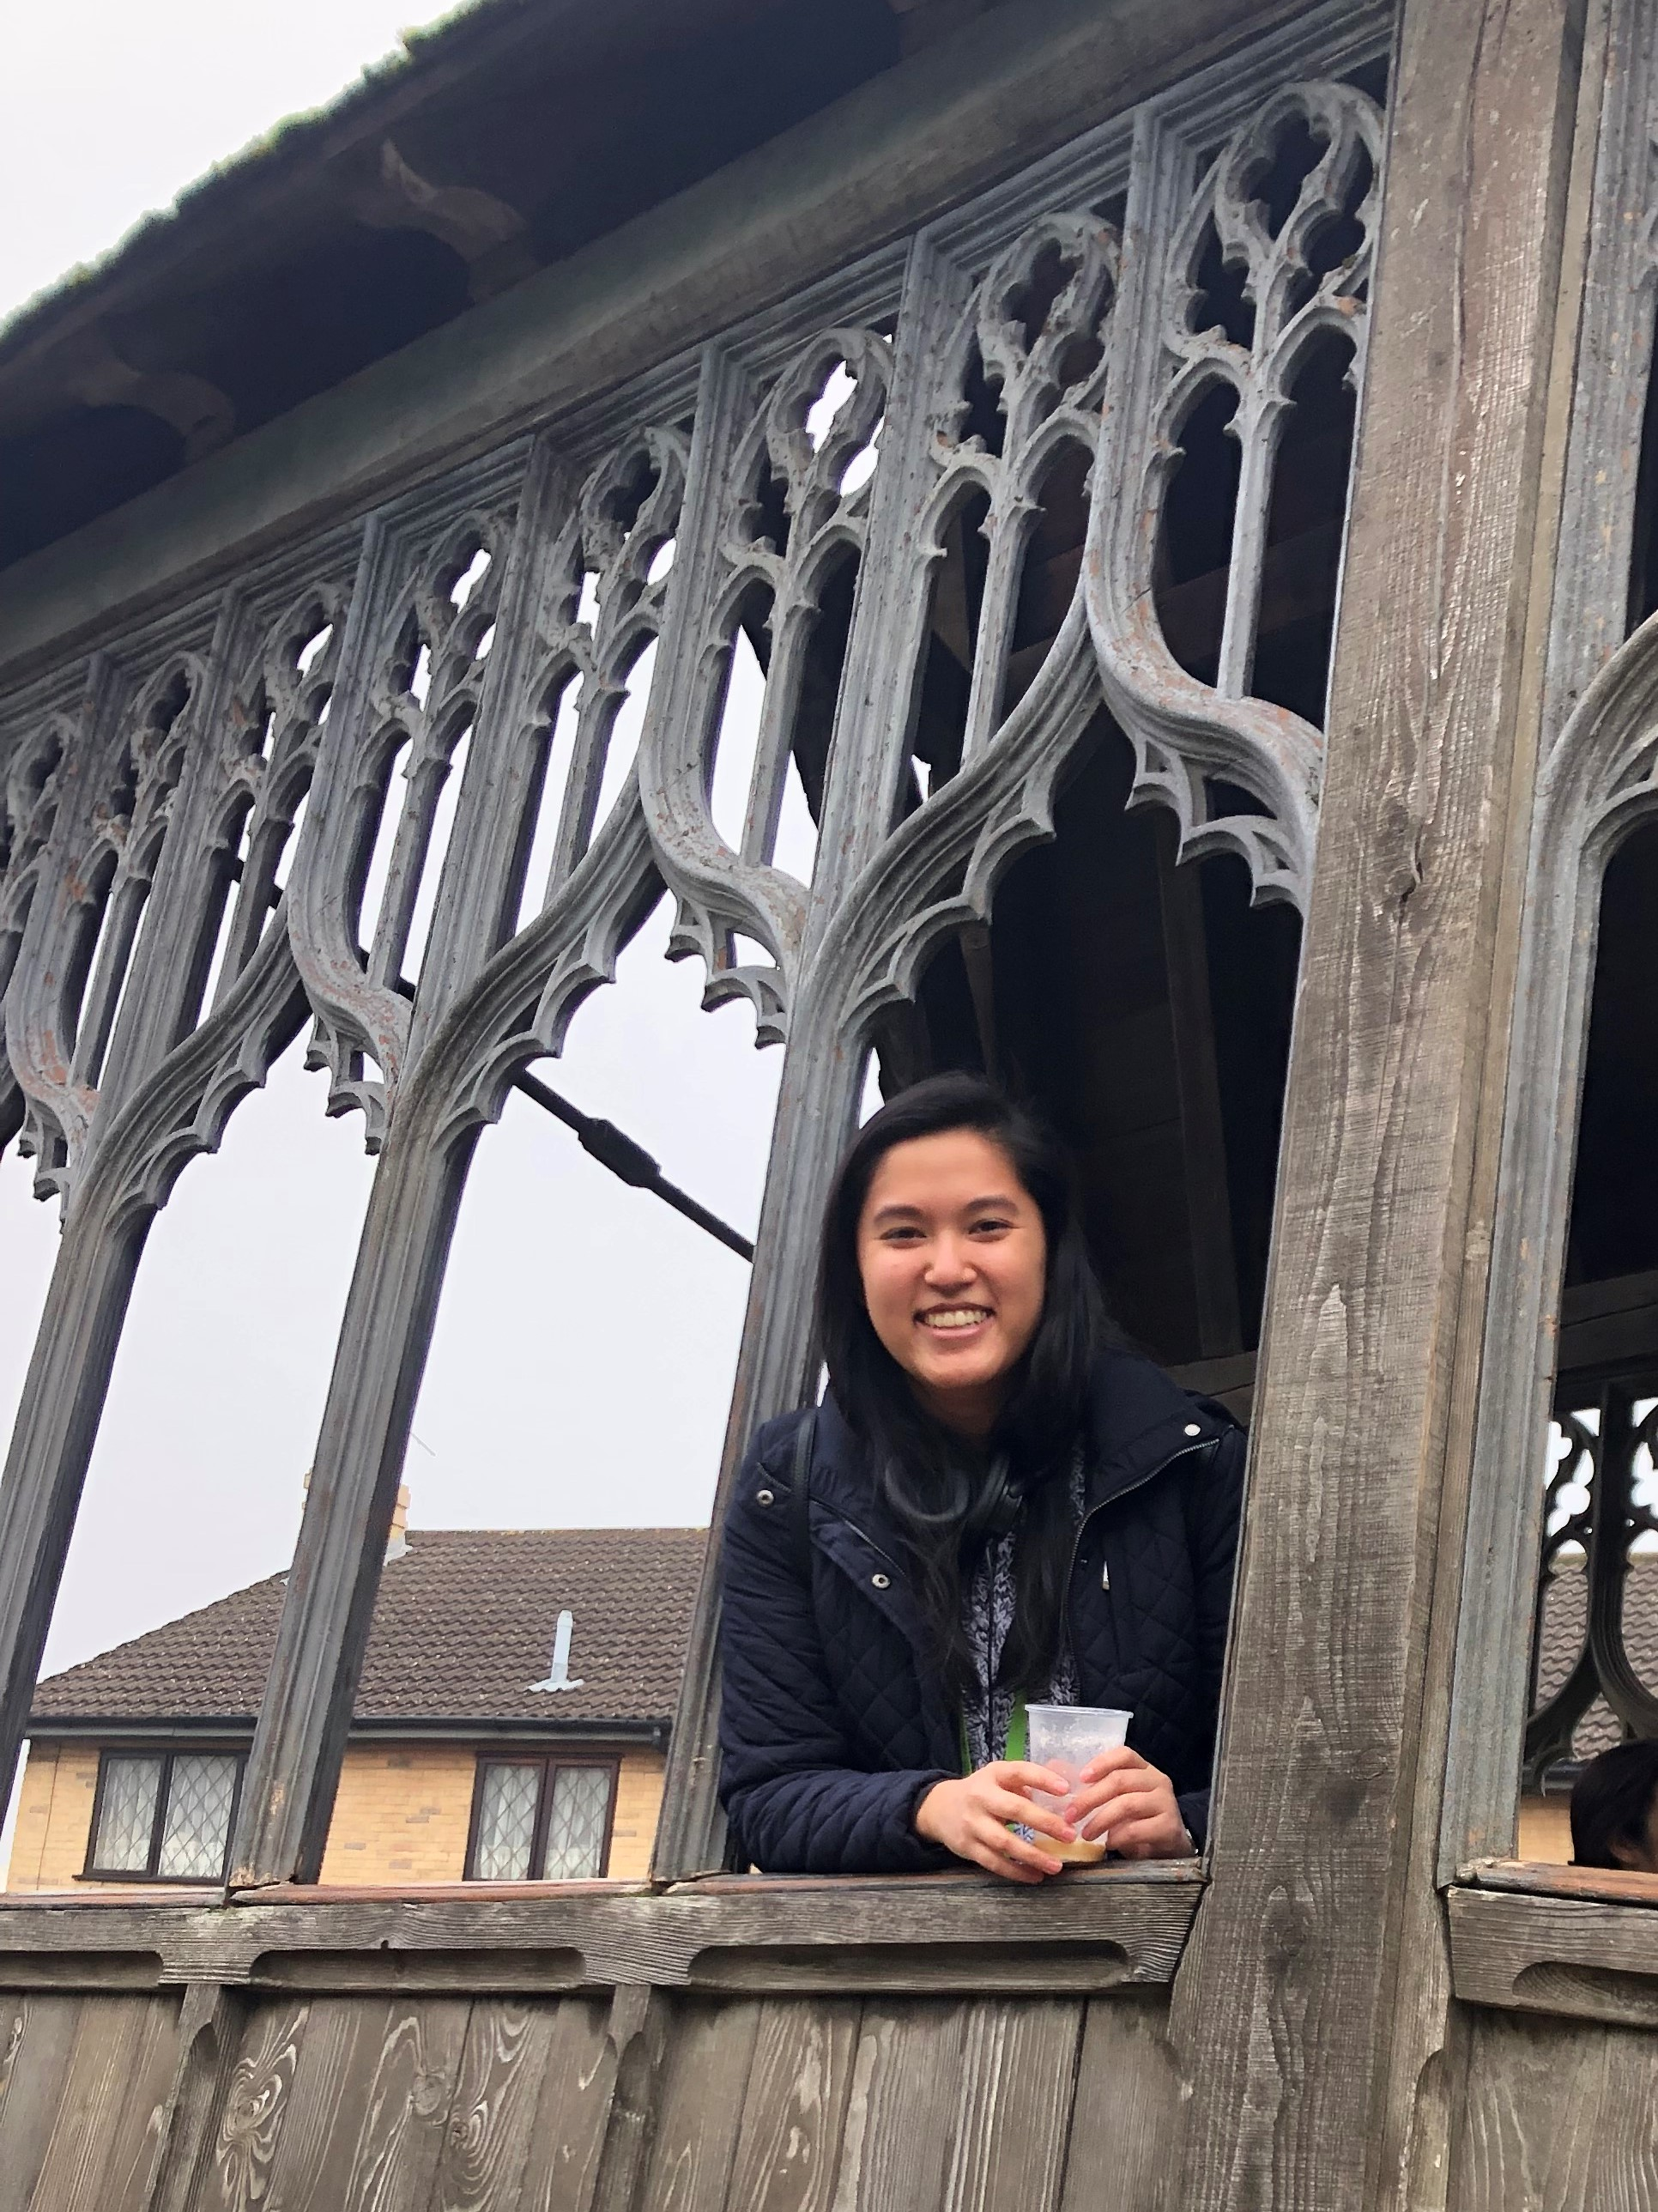 Elaine Nguyen, President - Elaine grew up in Seattle, WA and graduated from Brown University with a degree in Neuroscience (go Bruno!). She worked for 3 years in neuroscience research in Boston before coming to Duke Law. When not camped out in the library, she enjoys hiking, cooking, cheering for Seattle sports teams, and going to the theater (movie, musical, or otherwise).Other Engagements: First Generation Professionals (1GP) (Vice President of Academic Success), Health Law Society (Treasurer), Cancer Pro Bono Project Volunteer1L Summer: Health Affairs & Technology Law Group, University of California Office of General Counsel (Oakland, CA)